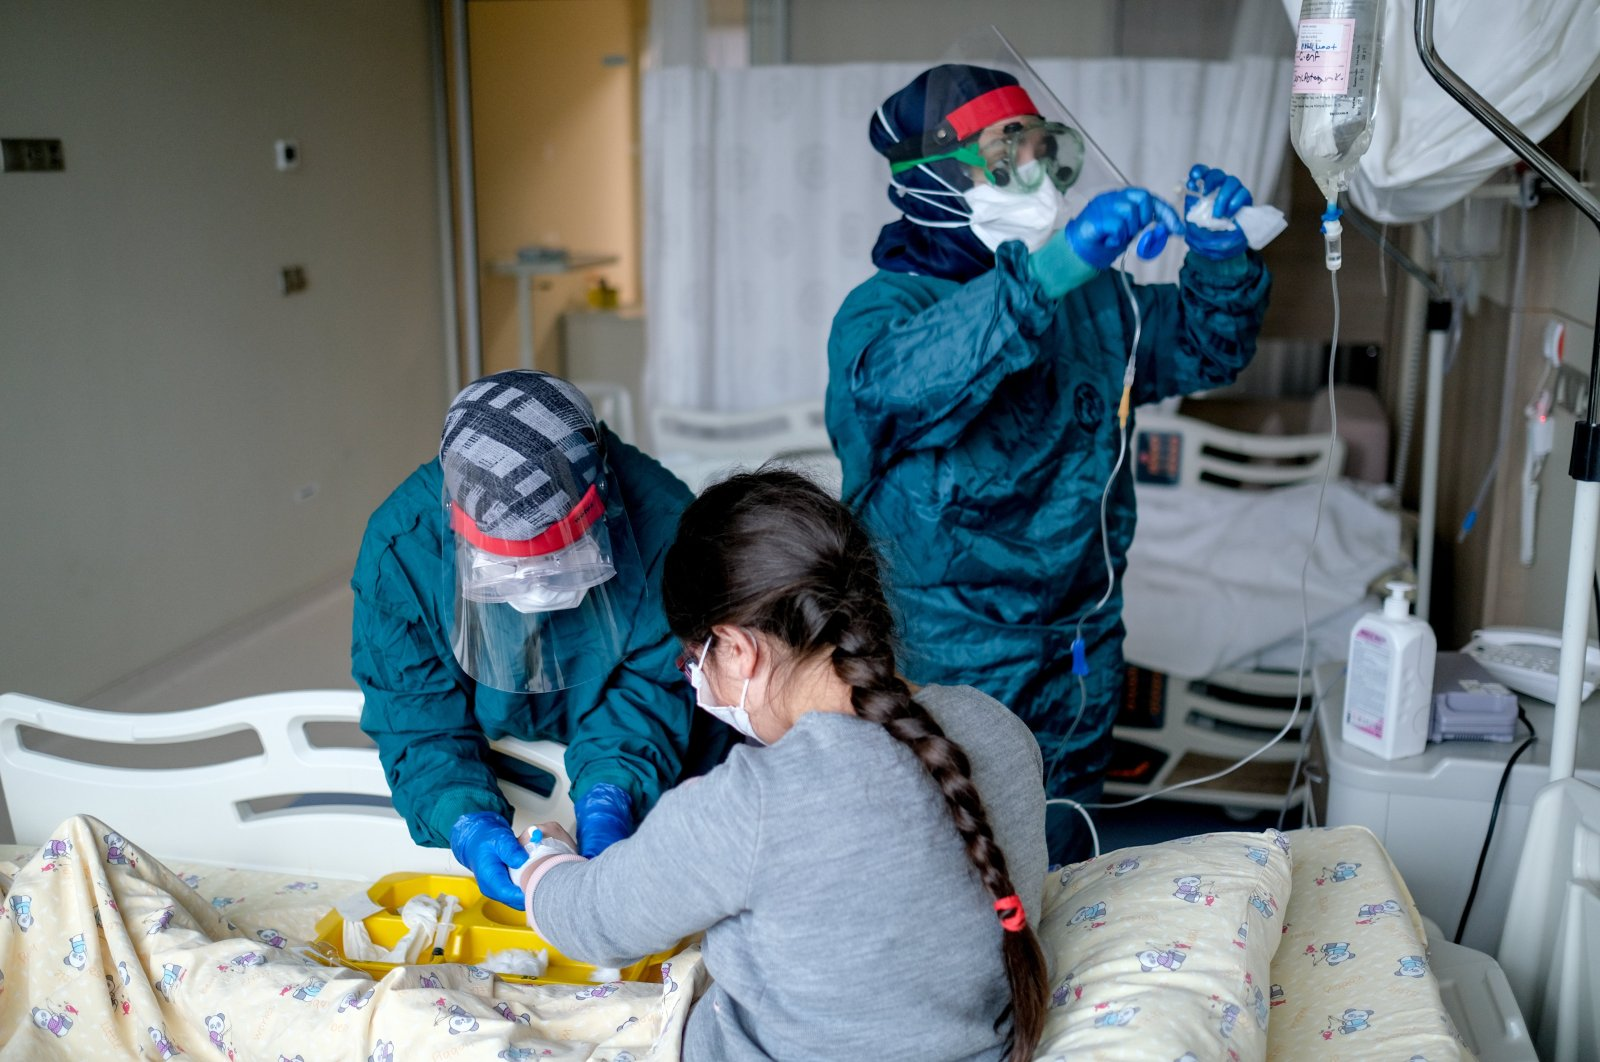 Healthcare workers help a patient infected with coronavirus at Lütfi Kırdar Training and Research hospital in Istanbul Turkey on June 5 2020. (Sabah Photo)